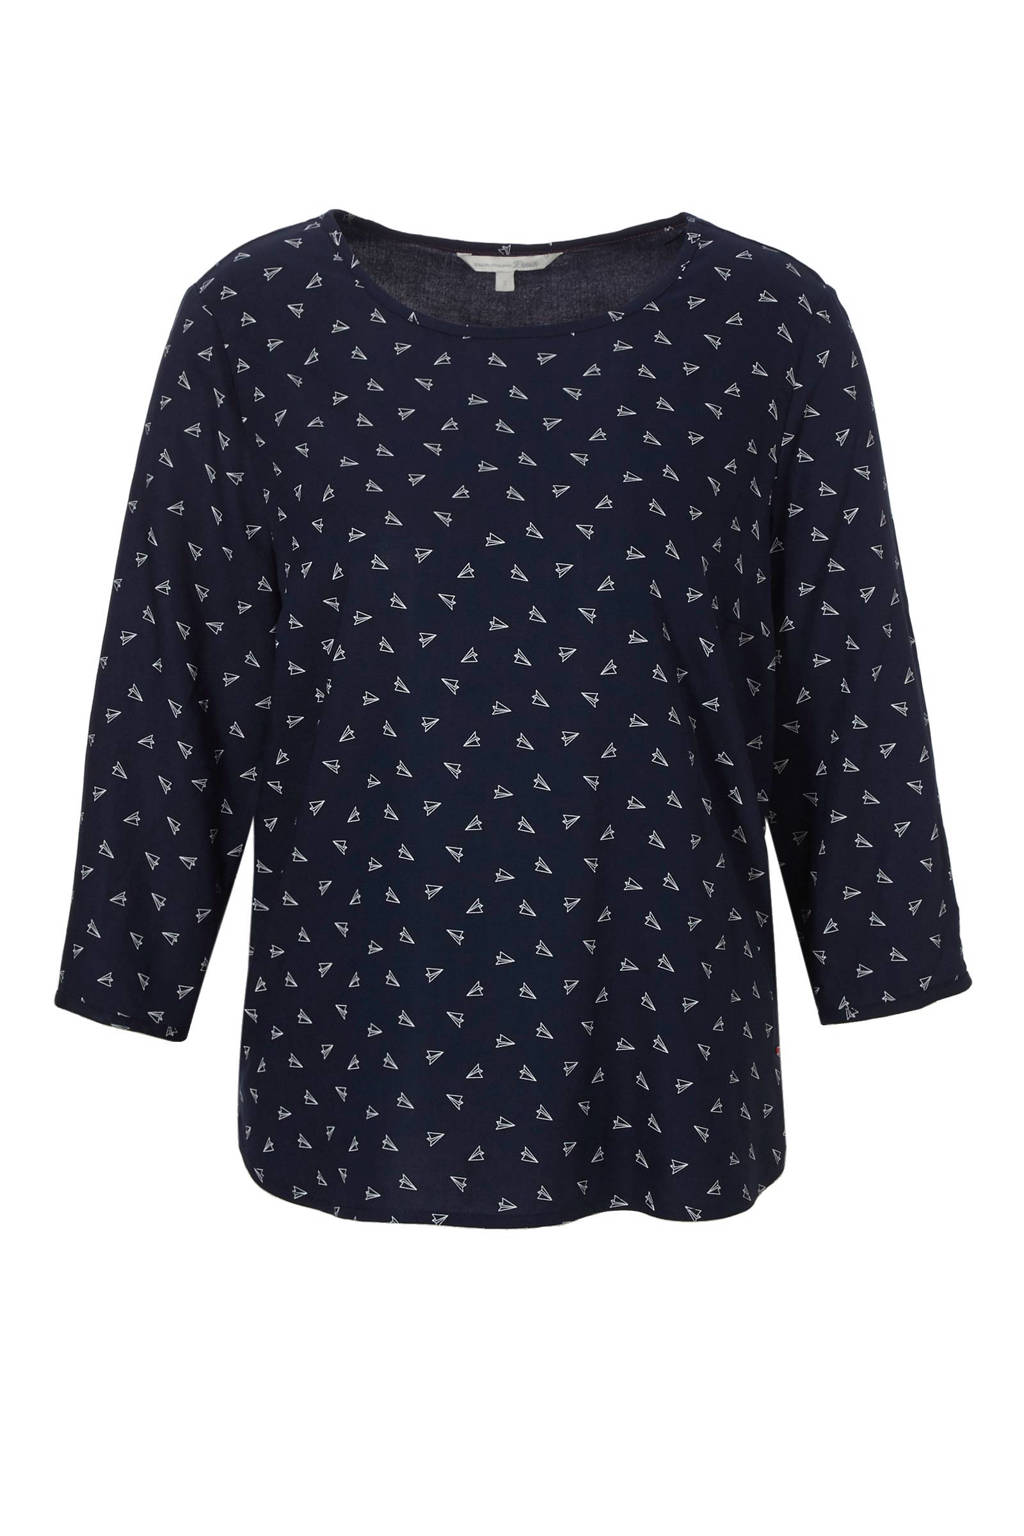 Tom Tailor top met all over print, Donkerblauw/wit